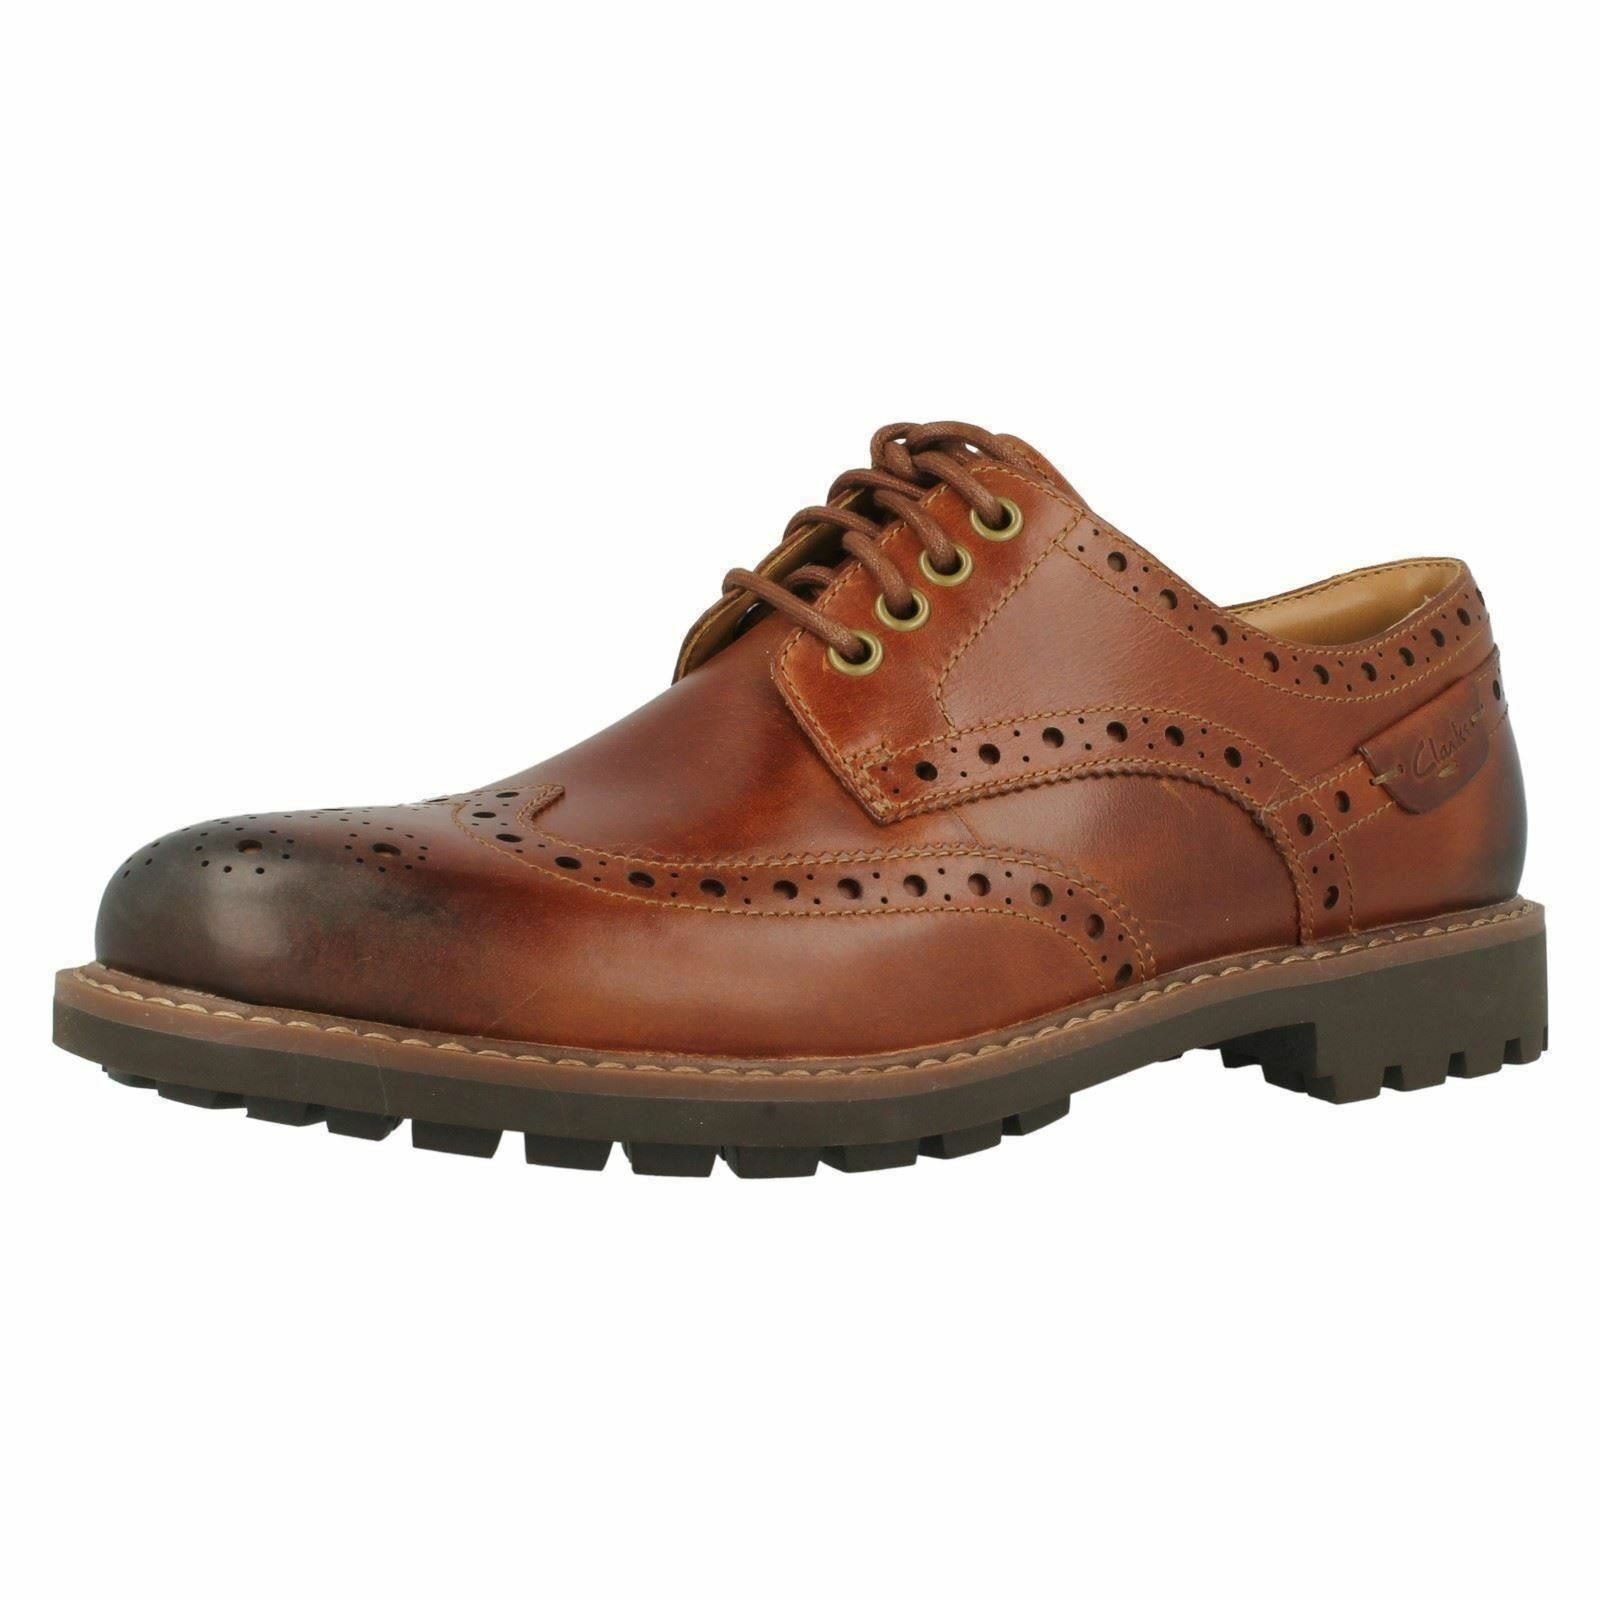 Mens Clarks Montacute Wing Dark Tan Leather Casual Lace Up Brogue shoes